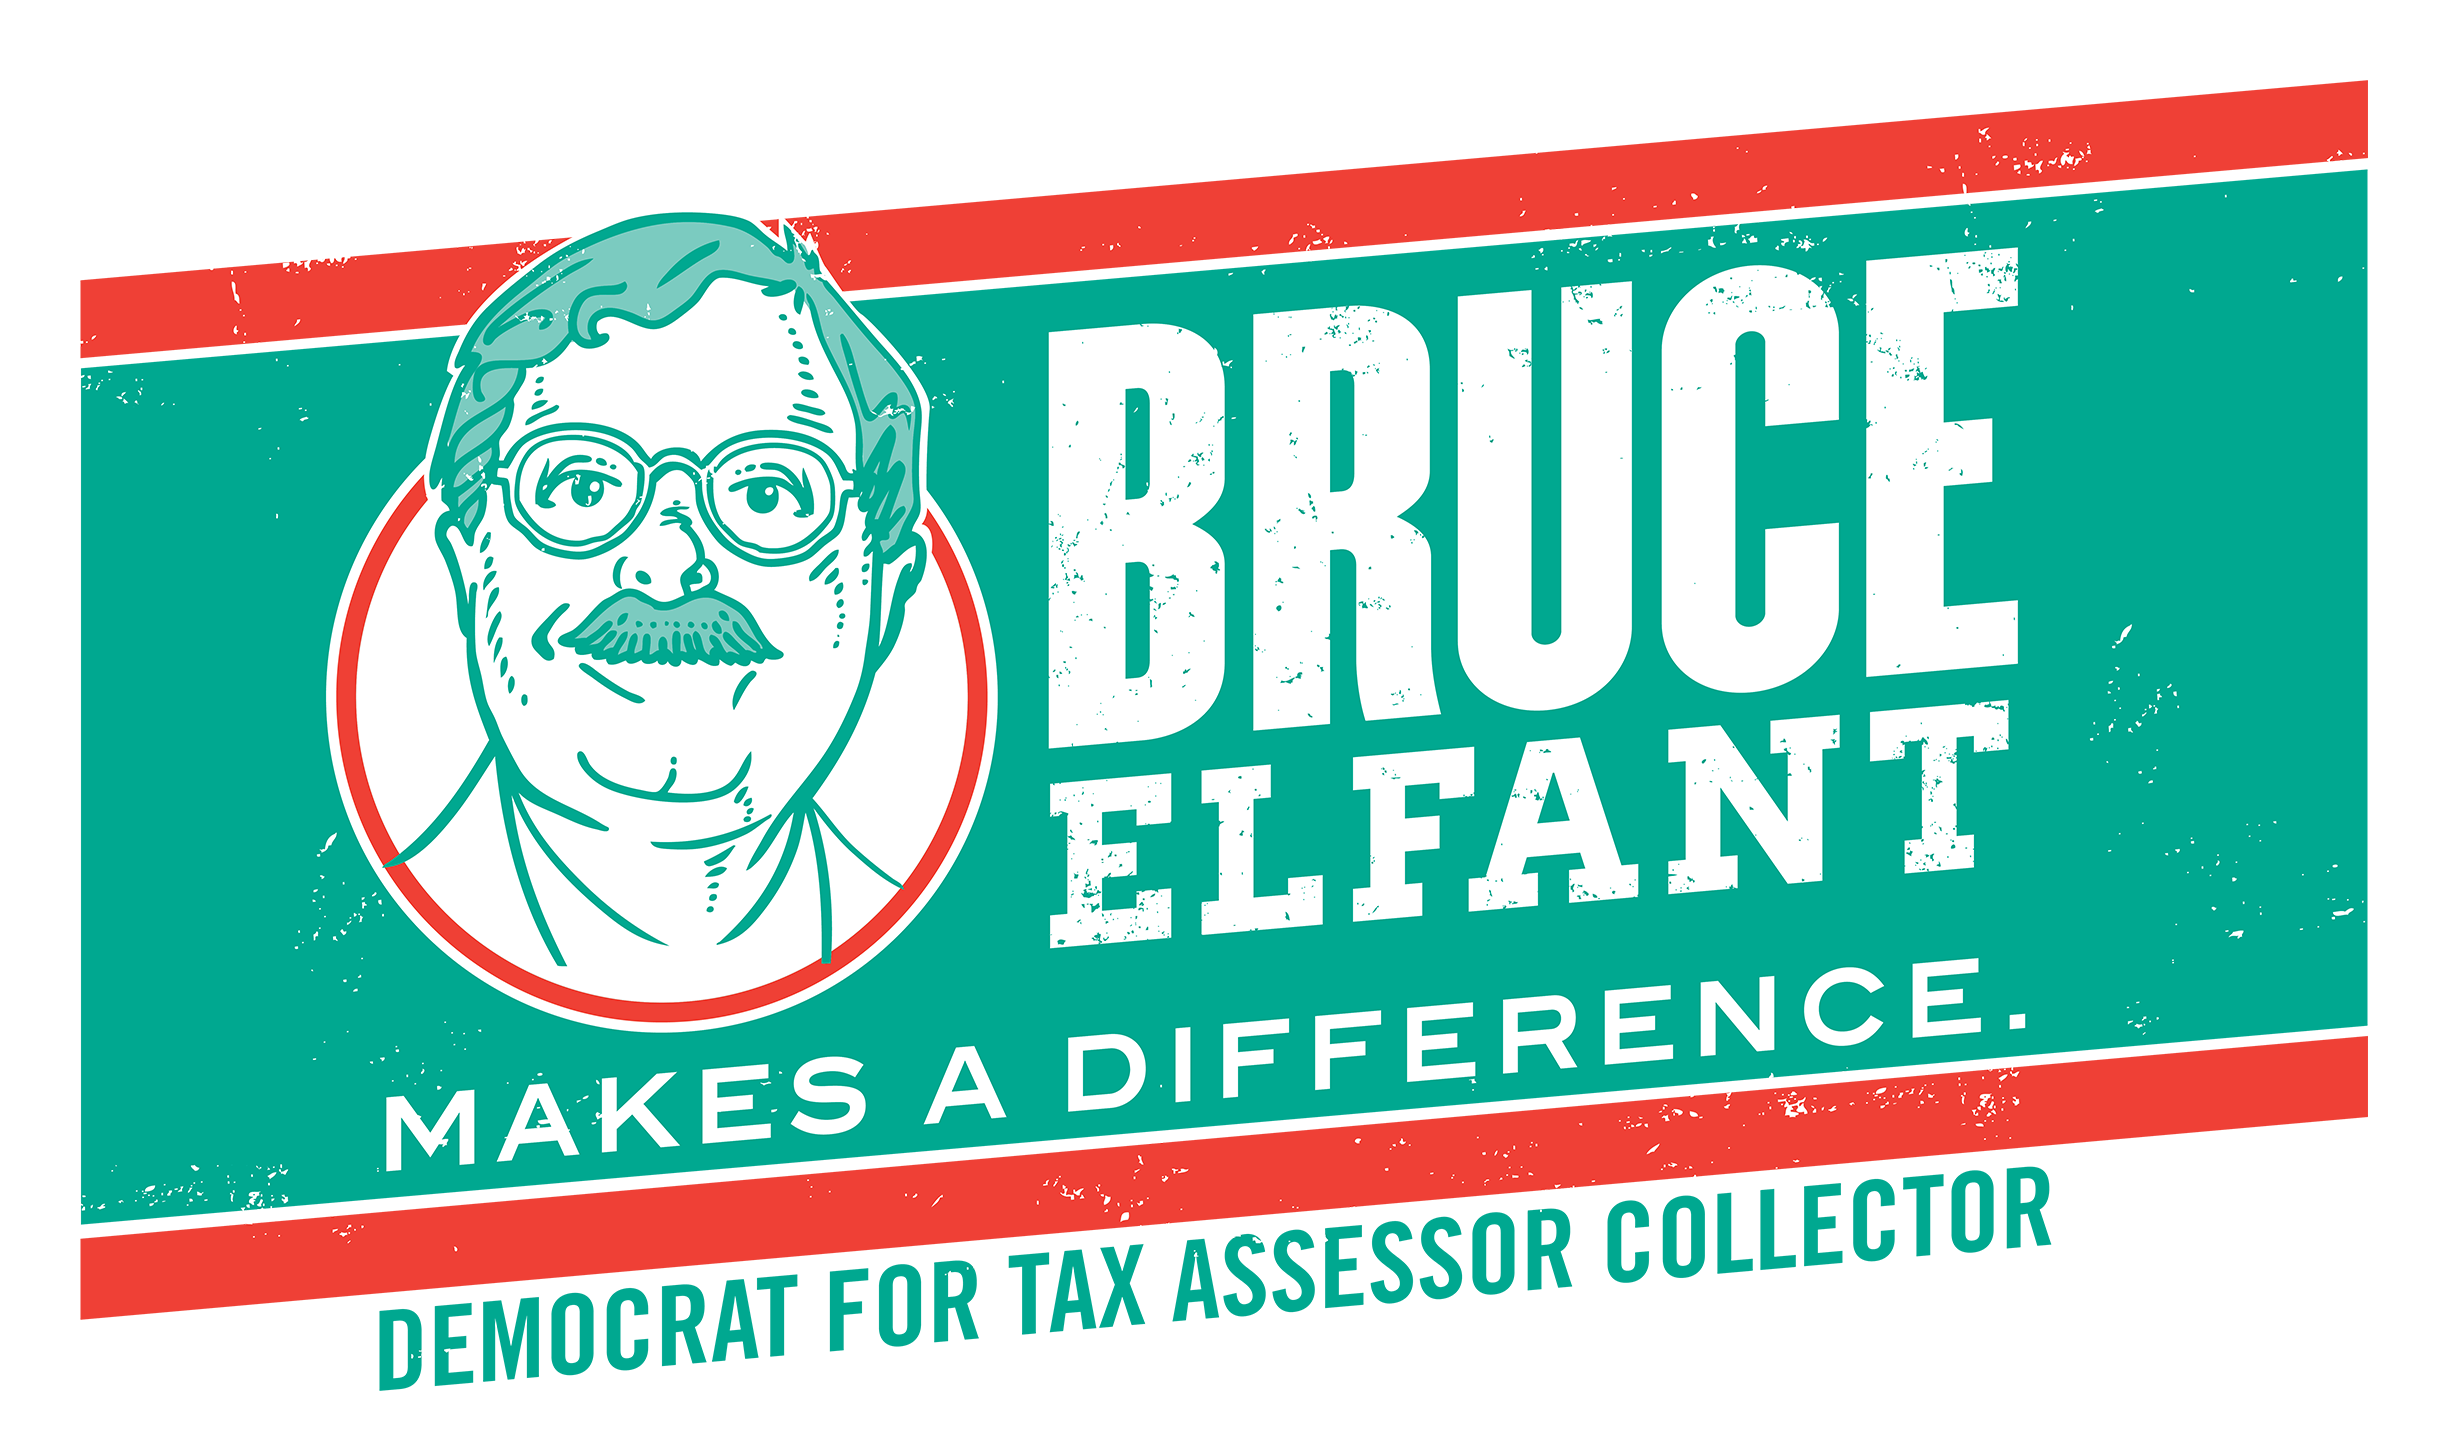 Bruce Elfant Democrat for tax assessor collector